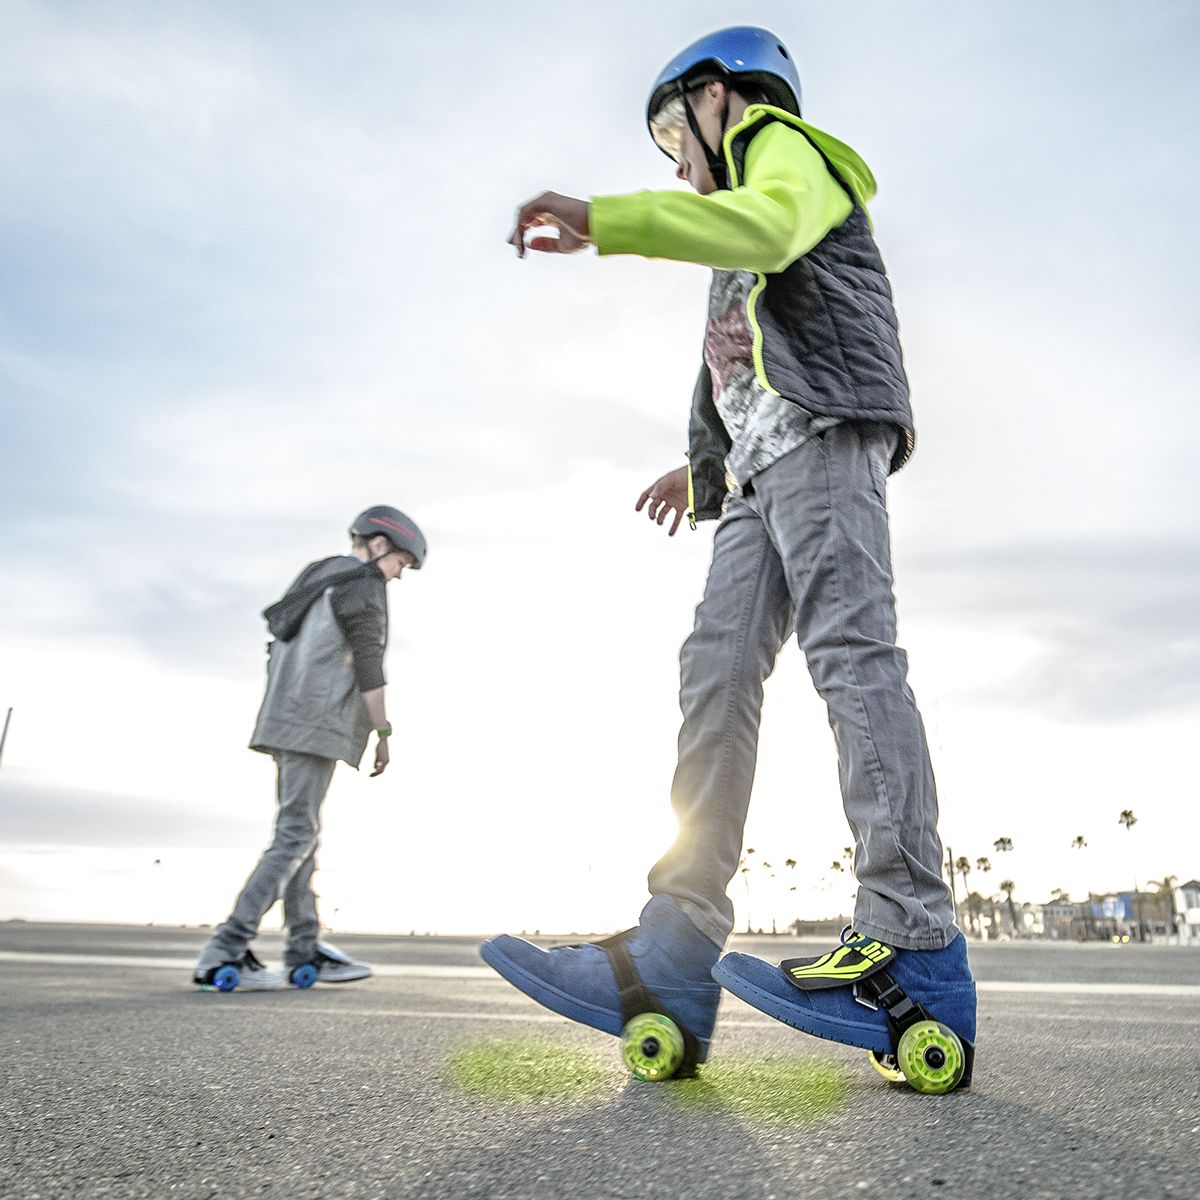 Kid's Neon Clip-On Skates by Yvolution